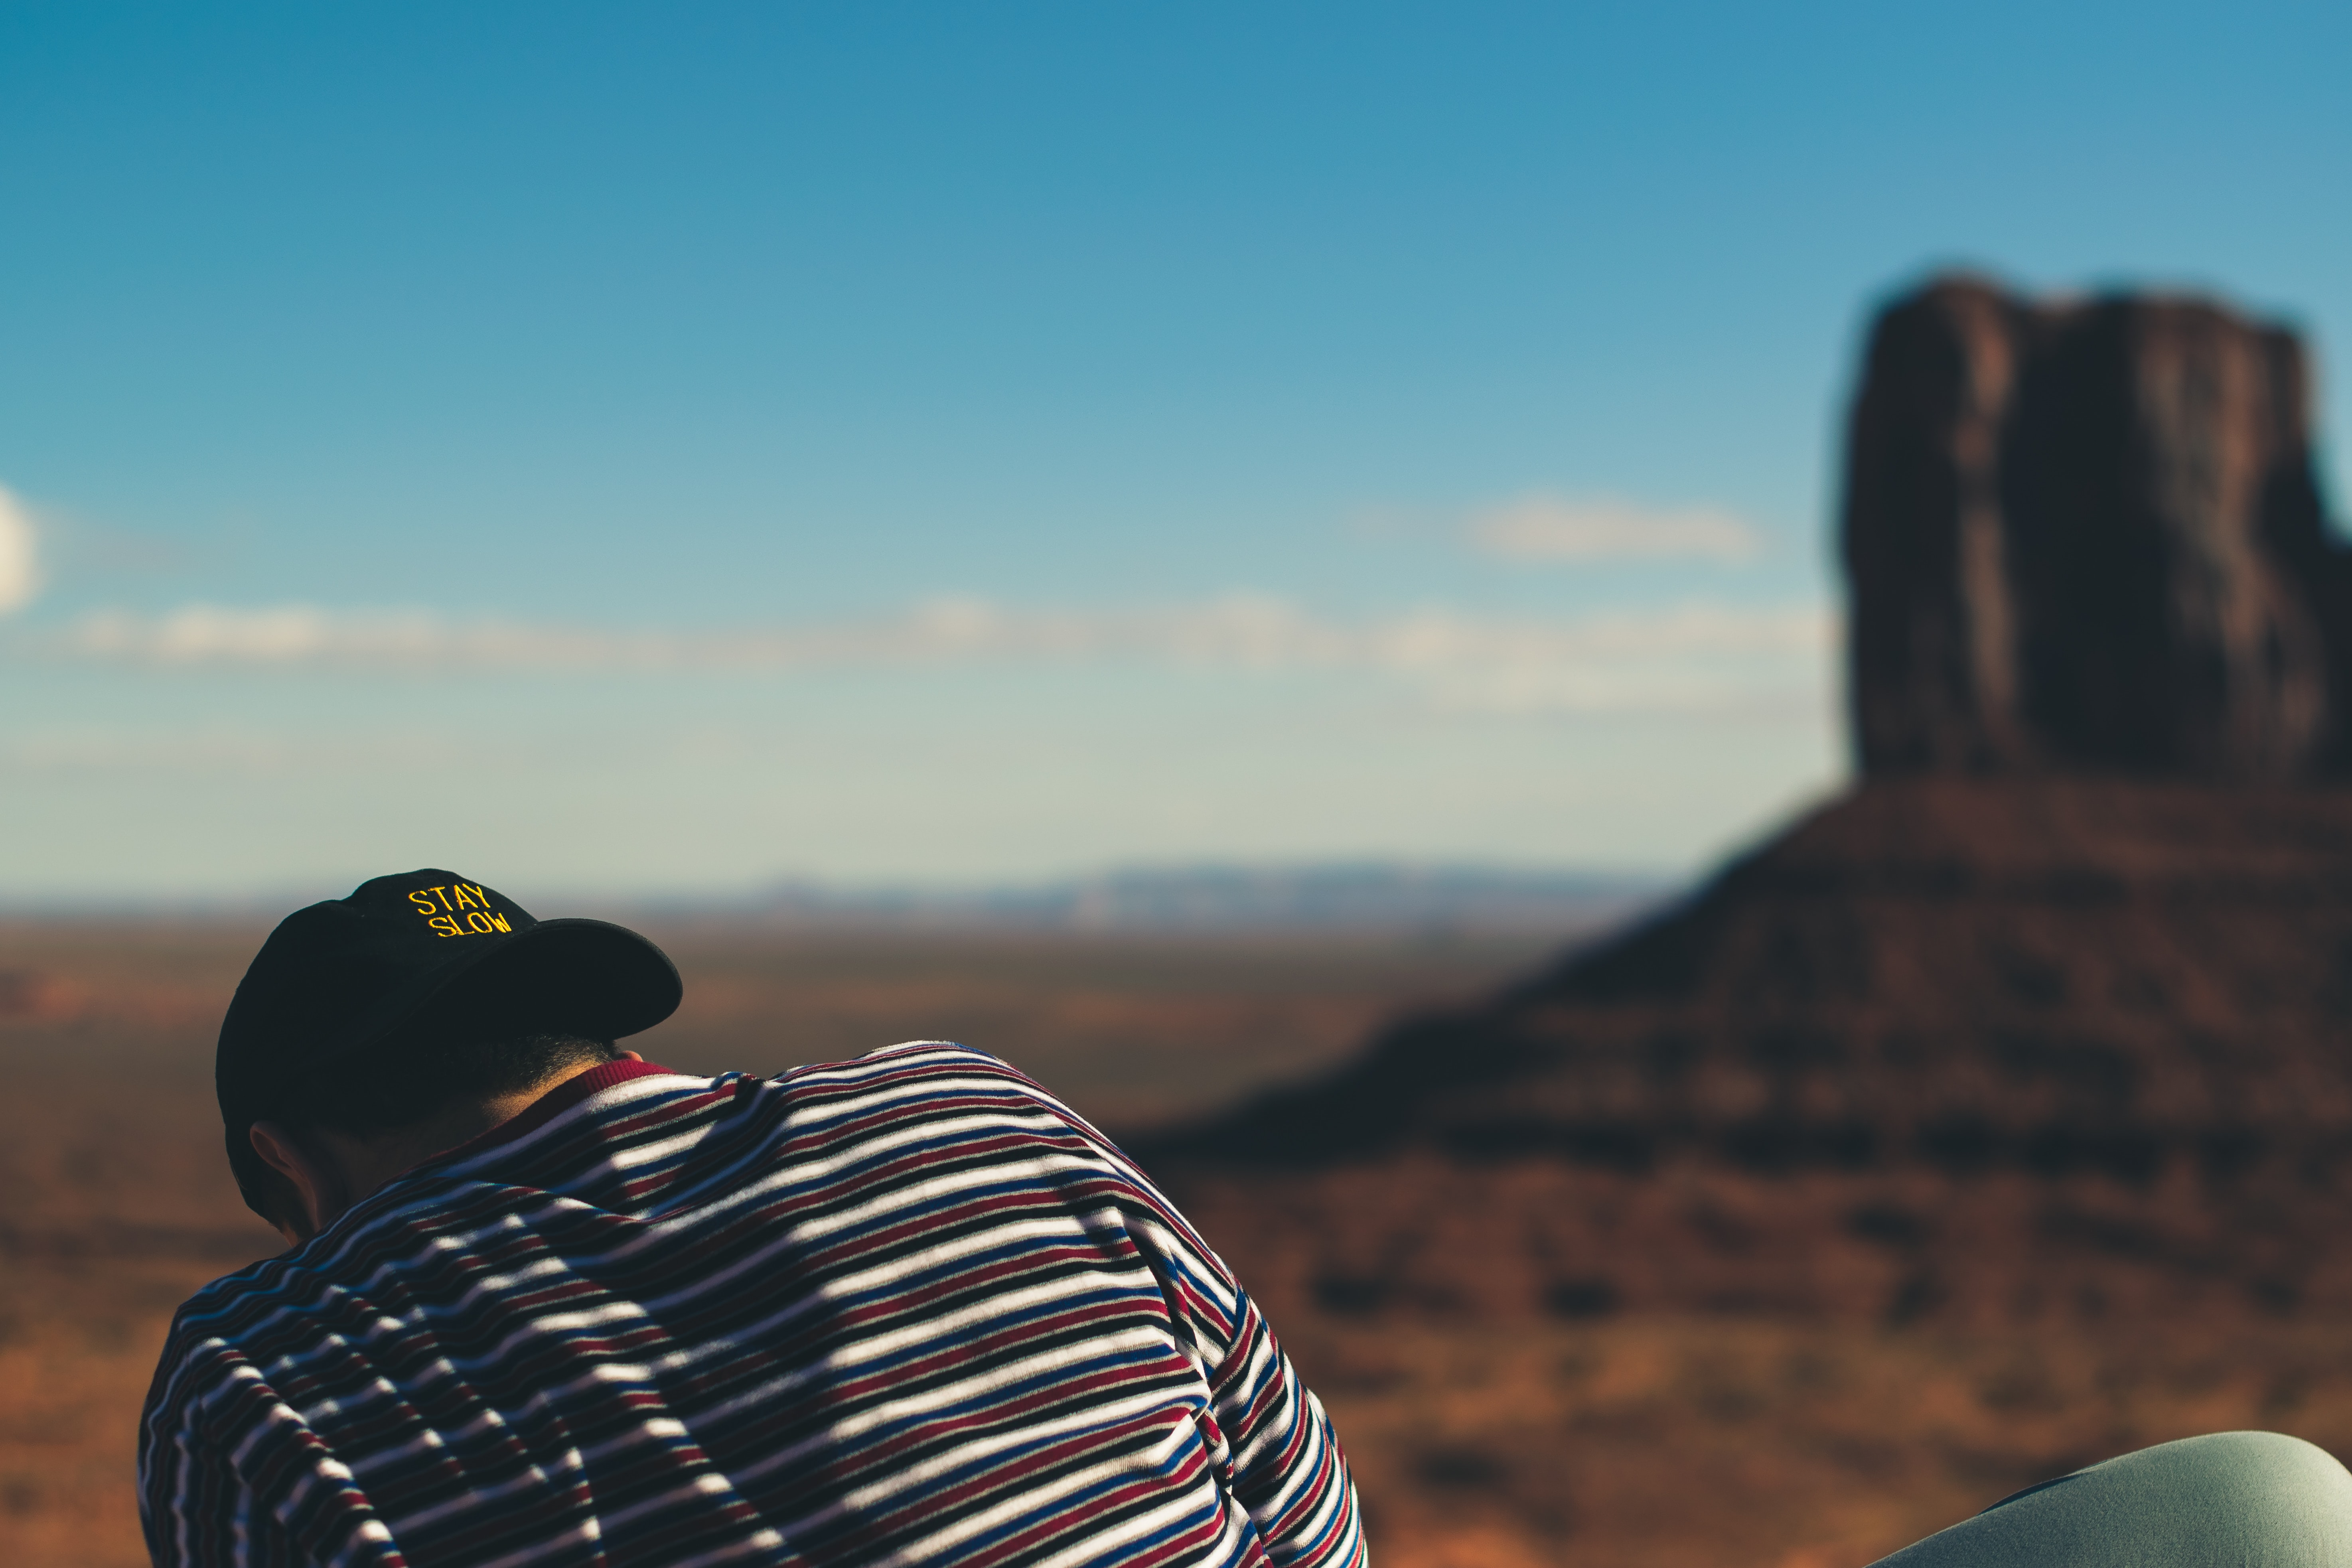 tilt-shift lens photography of person facing Monument Valley, Utah Arizona during daytime